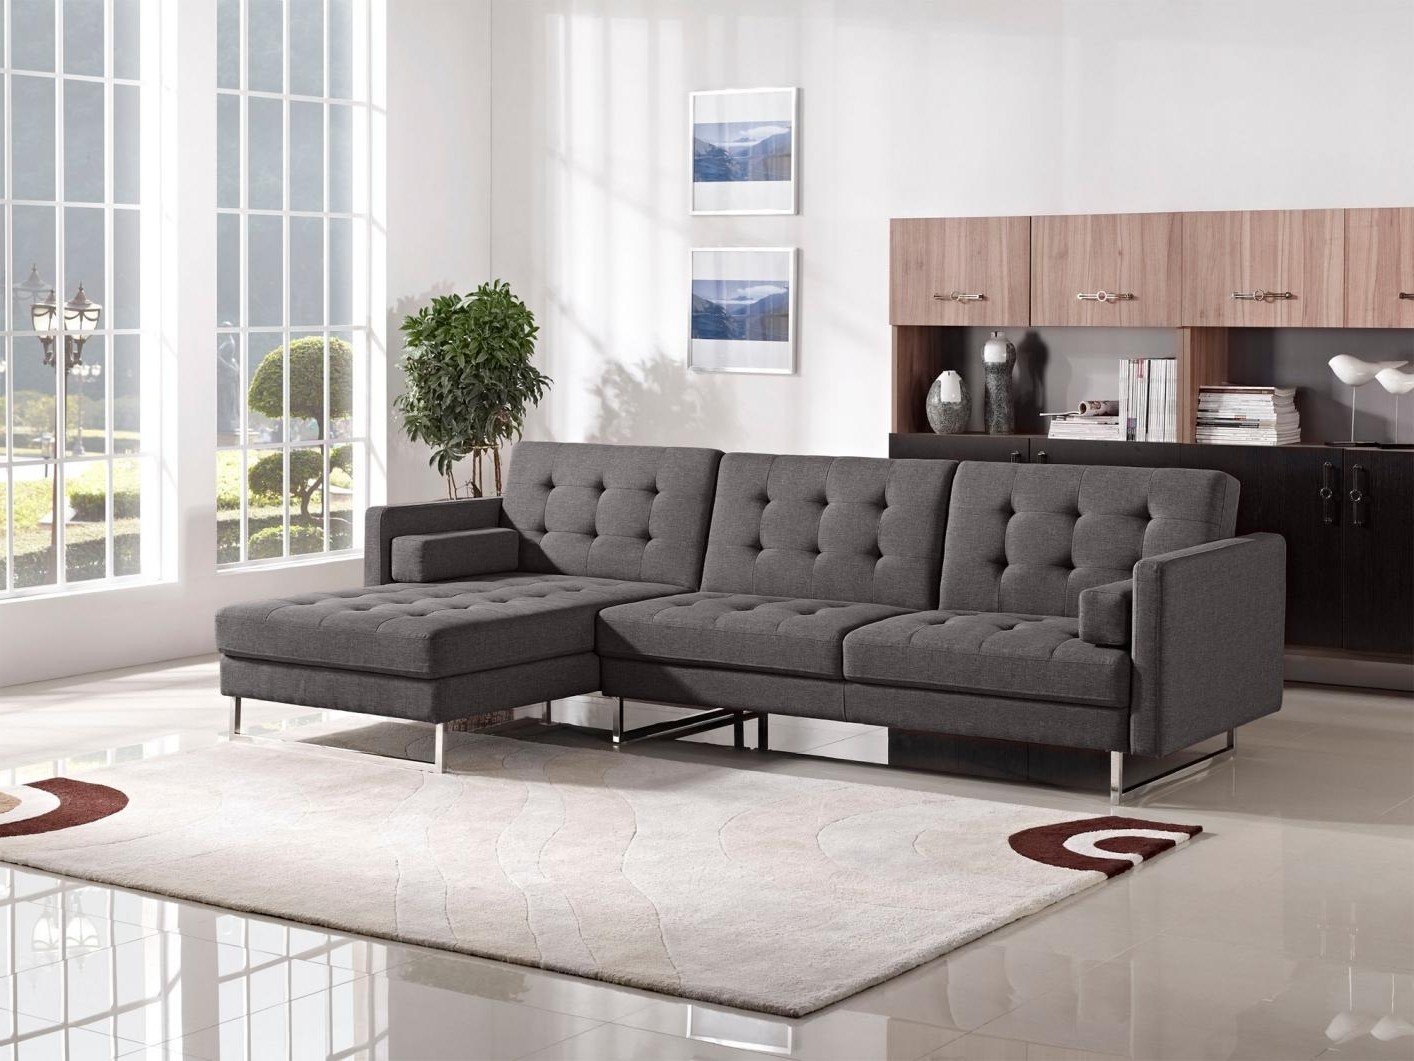 The Bay Sectional Sofas With Regard To Popular Modern L Shaped White Leather Sectional Sofa Bed Chrome Metal Base (View 18 of 20)